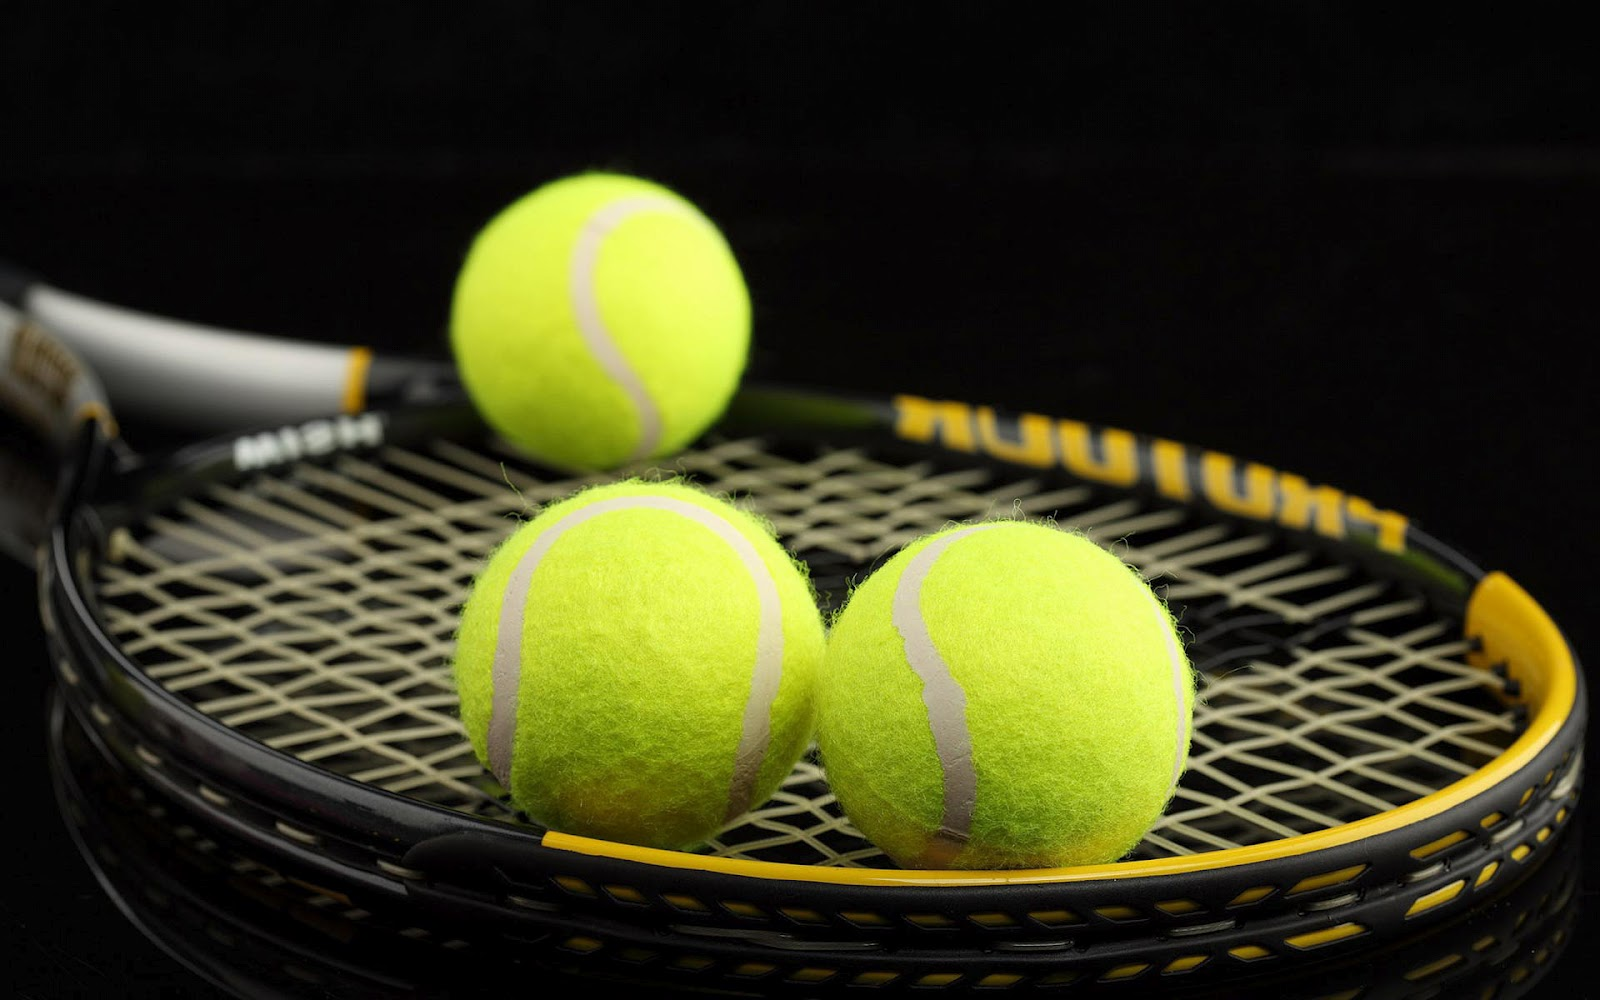 Tennis 1600x1000 px - High Definition Pictures